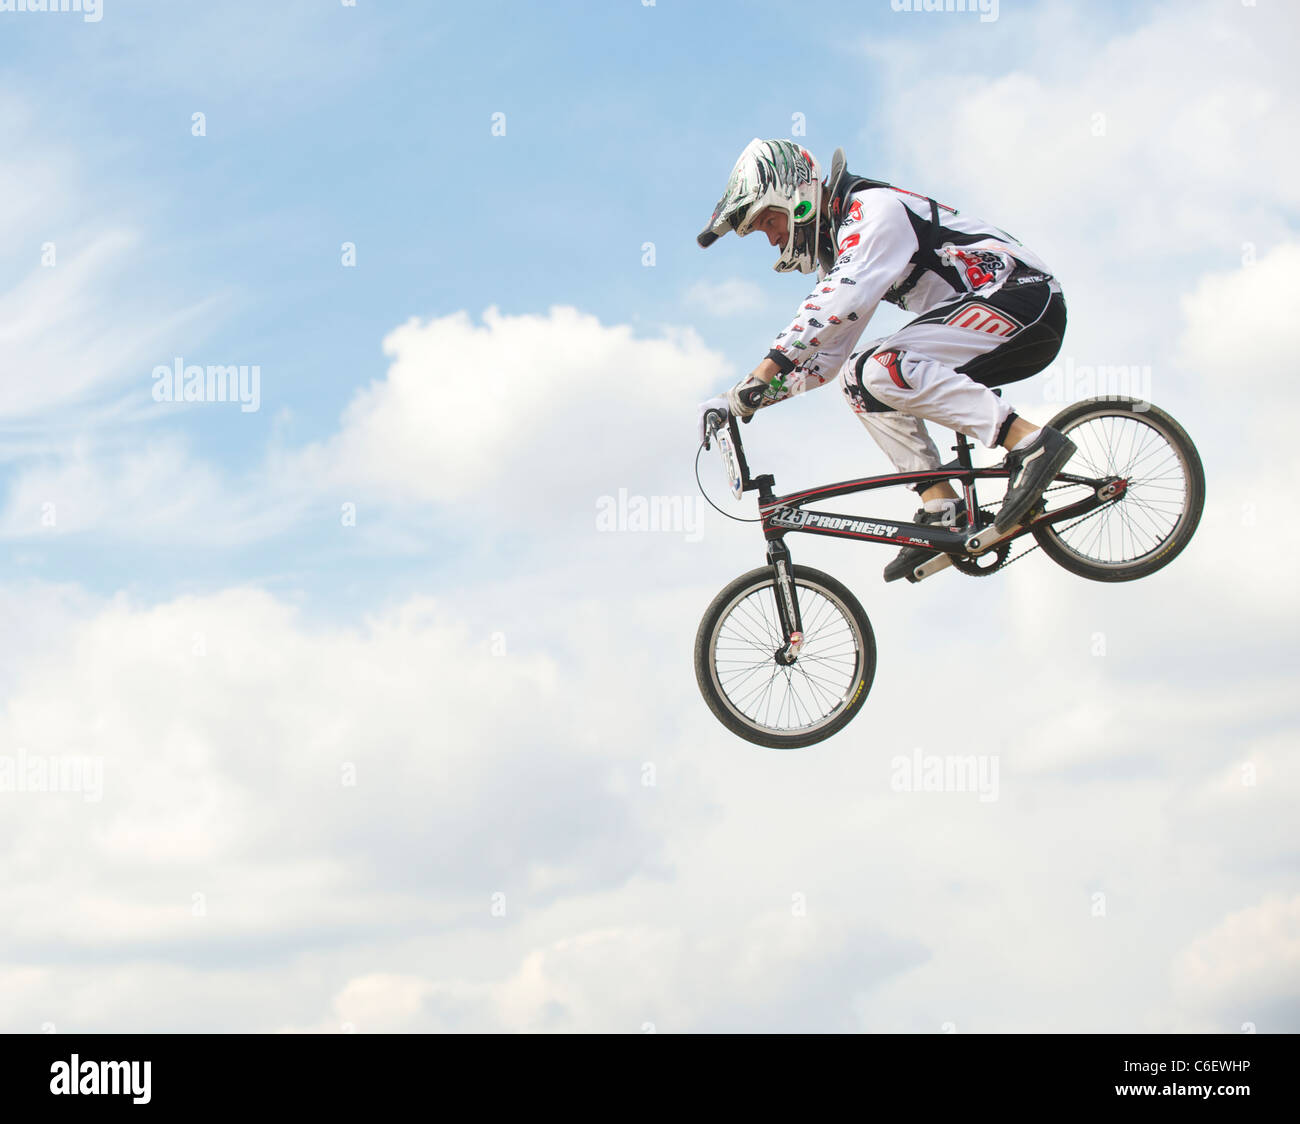 BMX Supercross World Cup Olympic Test Event Park Stratford London England